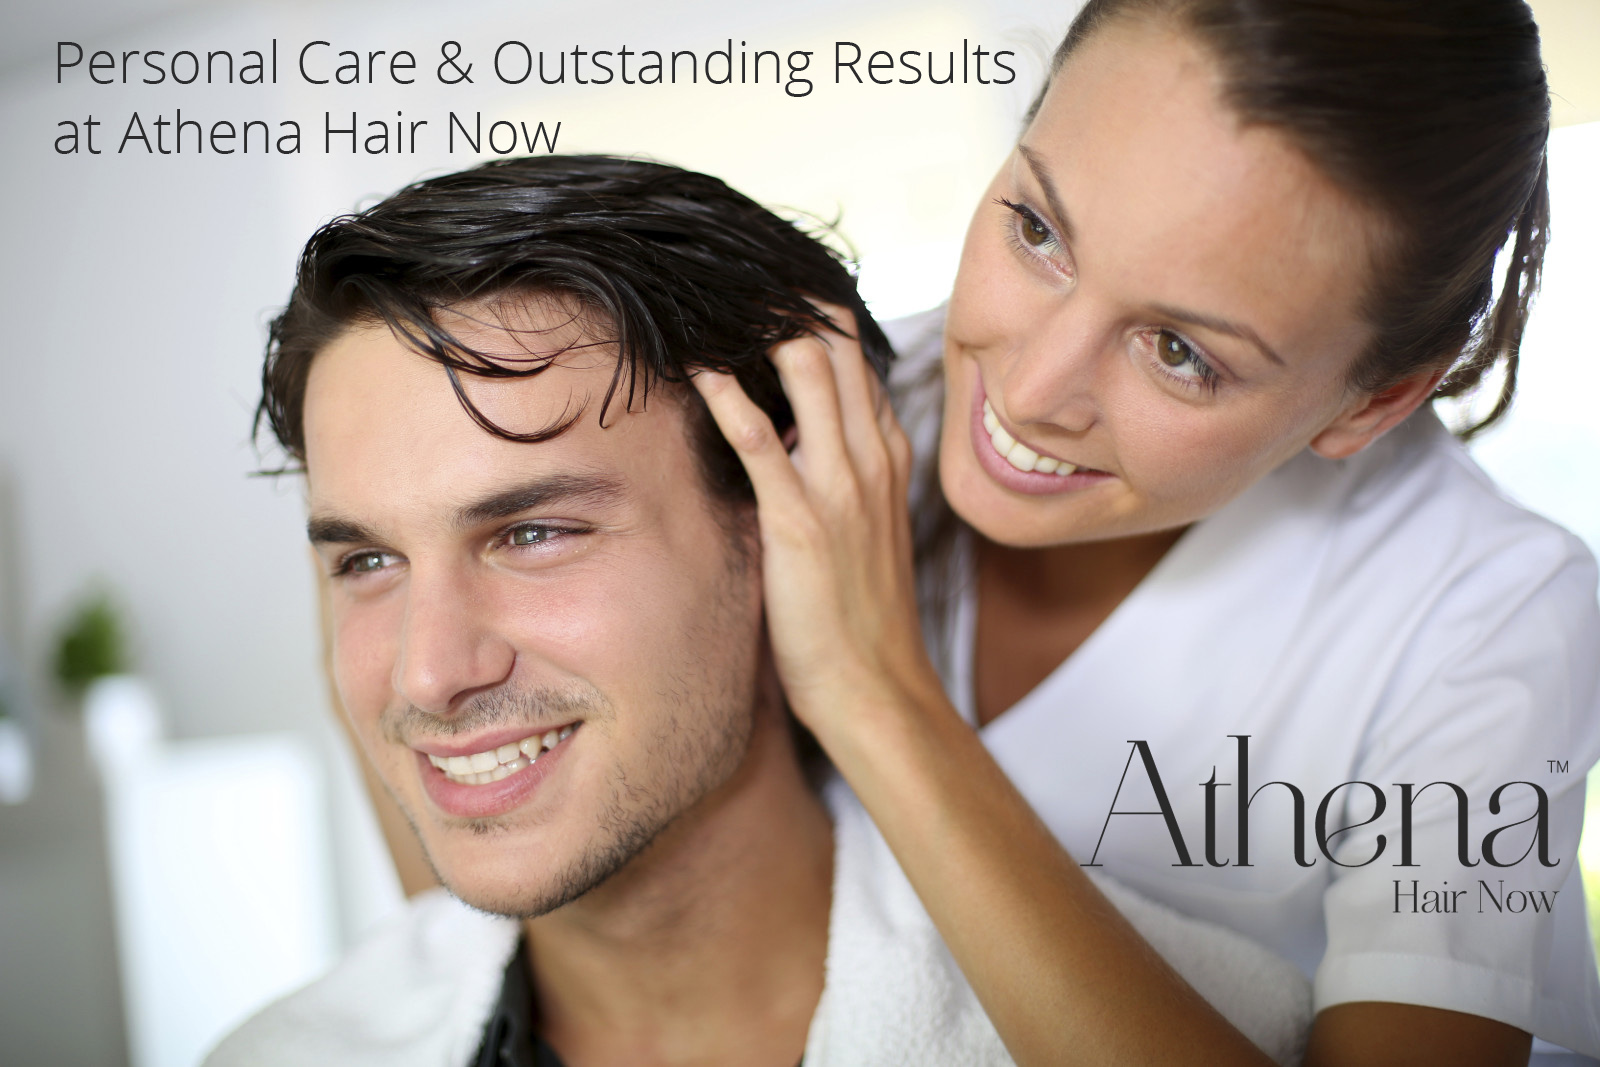 Athena Hair Now 5 - What are The Advantages Of FUE?